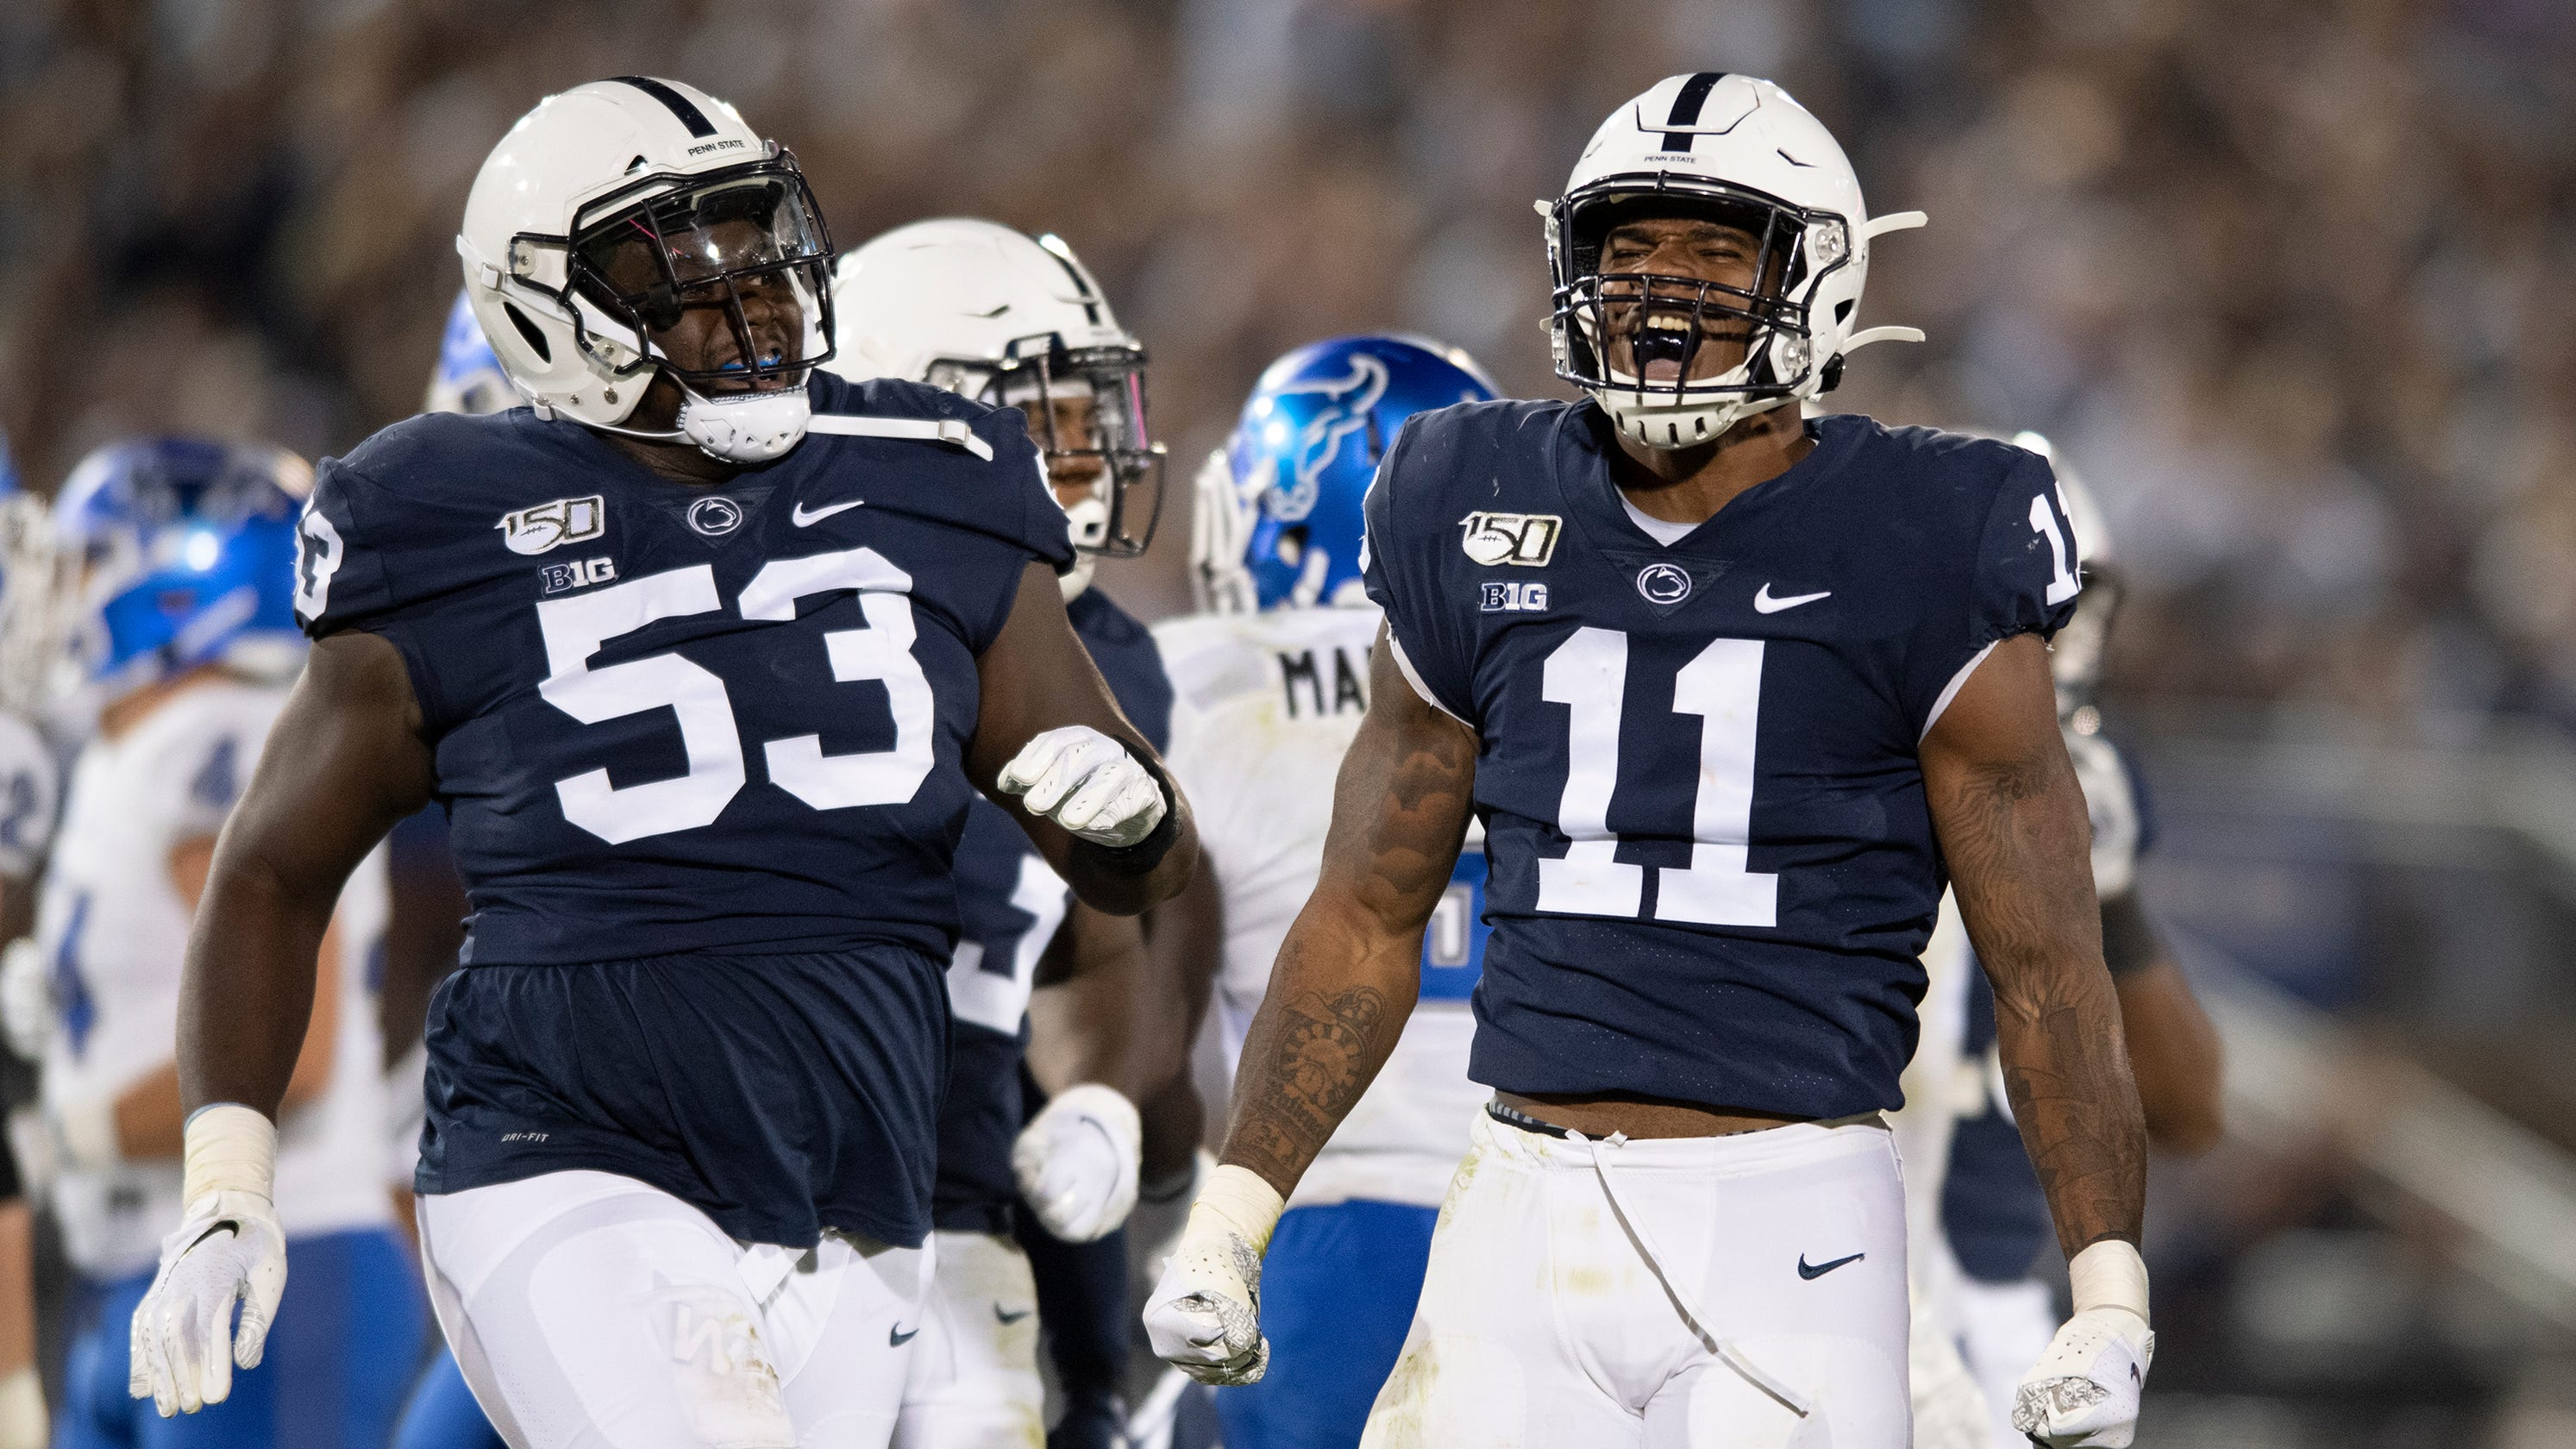 Penn State football: Micah Parsons with All-America effort ...